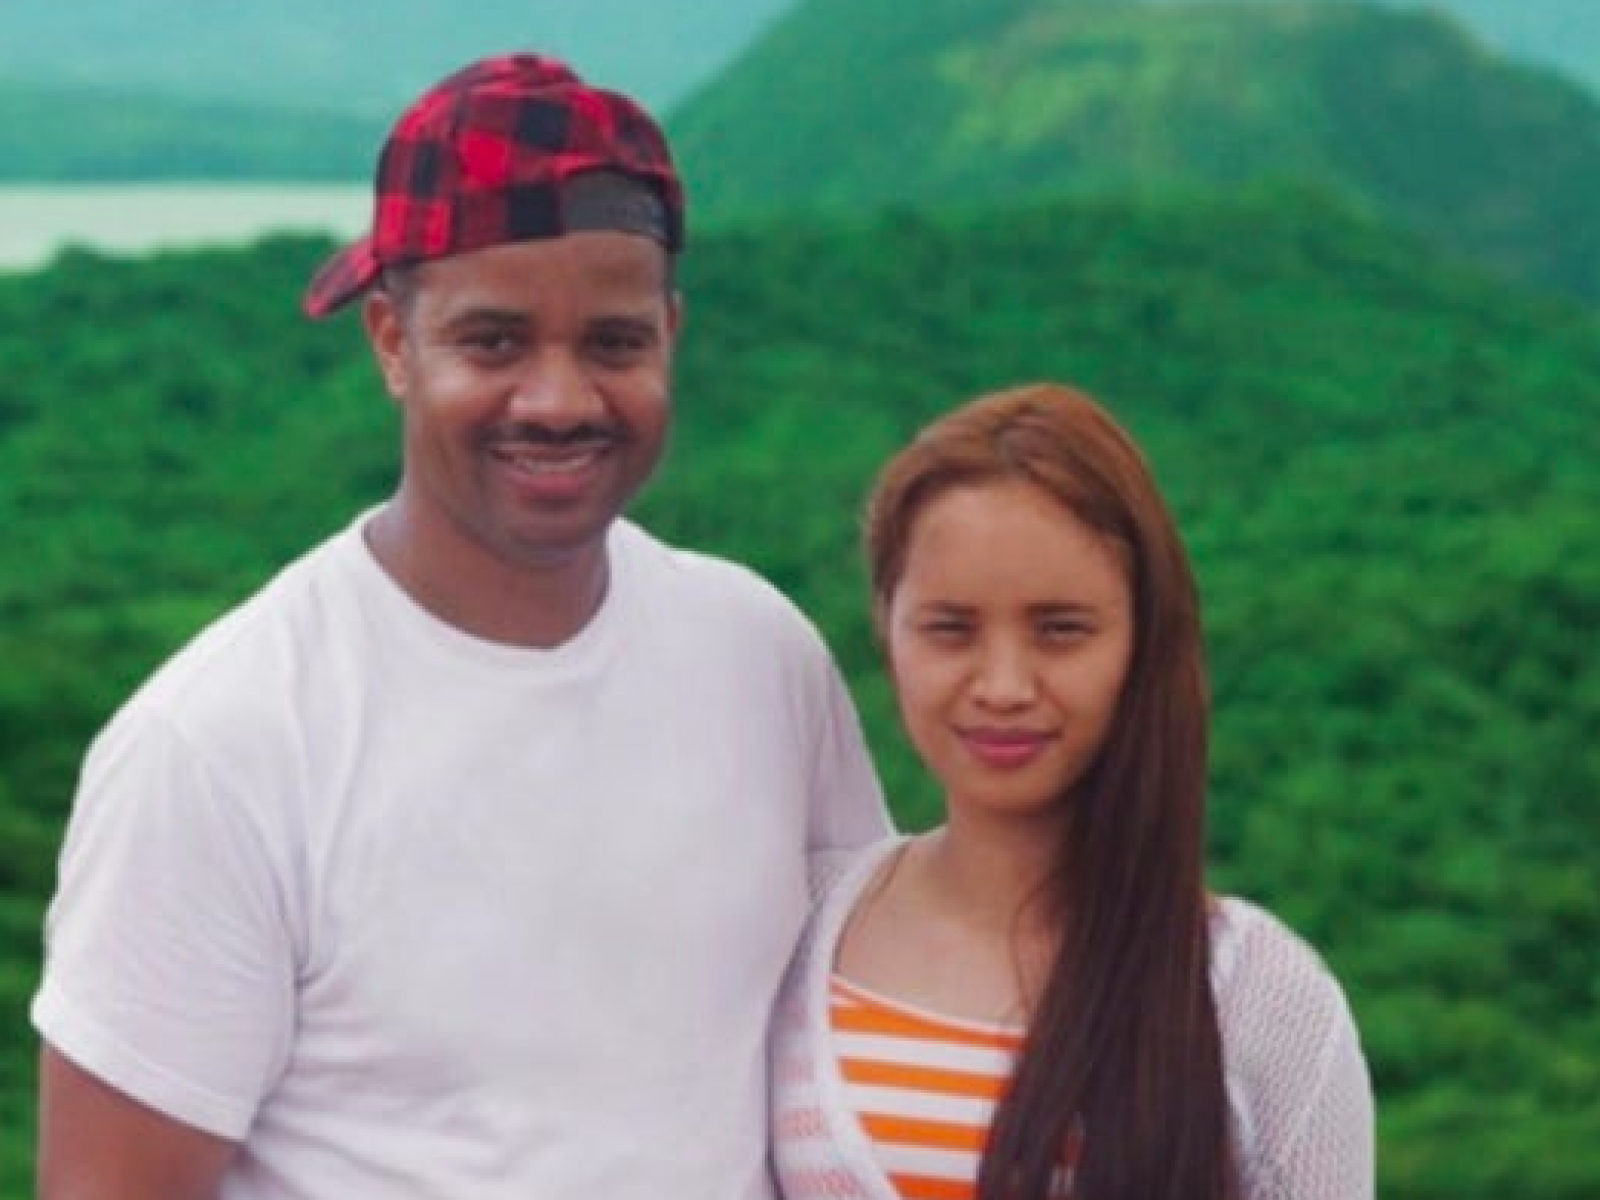 90 Day Fiancé' Where Are They Now? What Couples Are Still